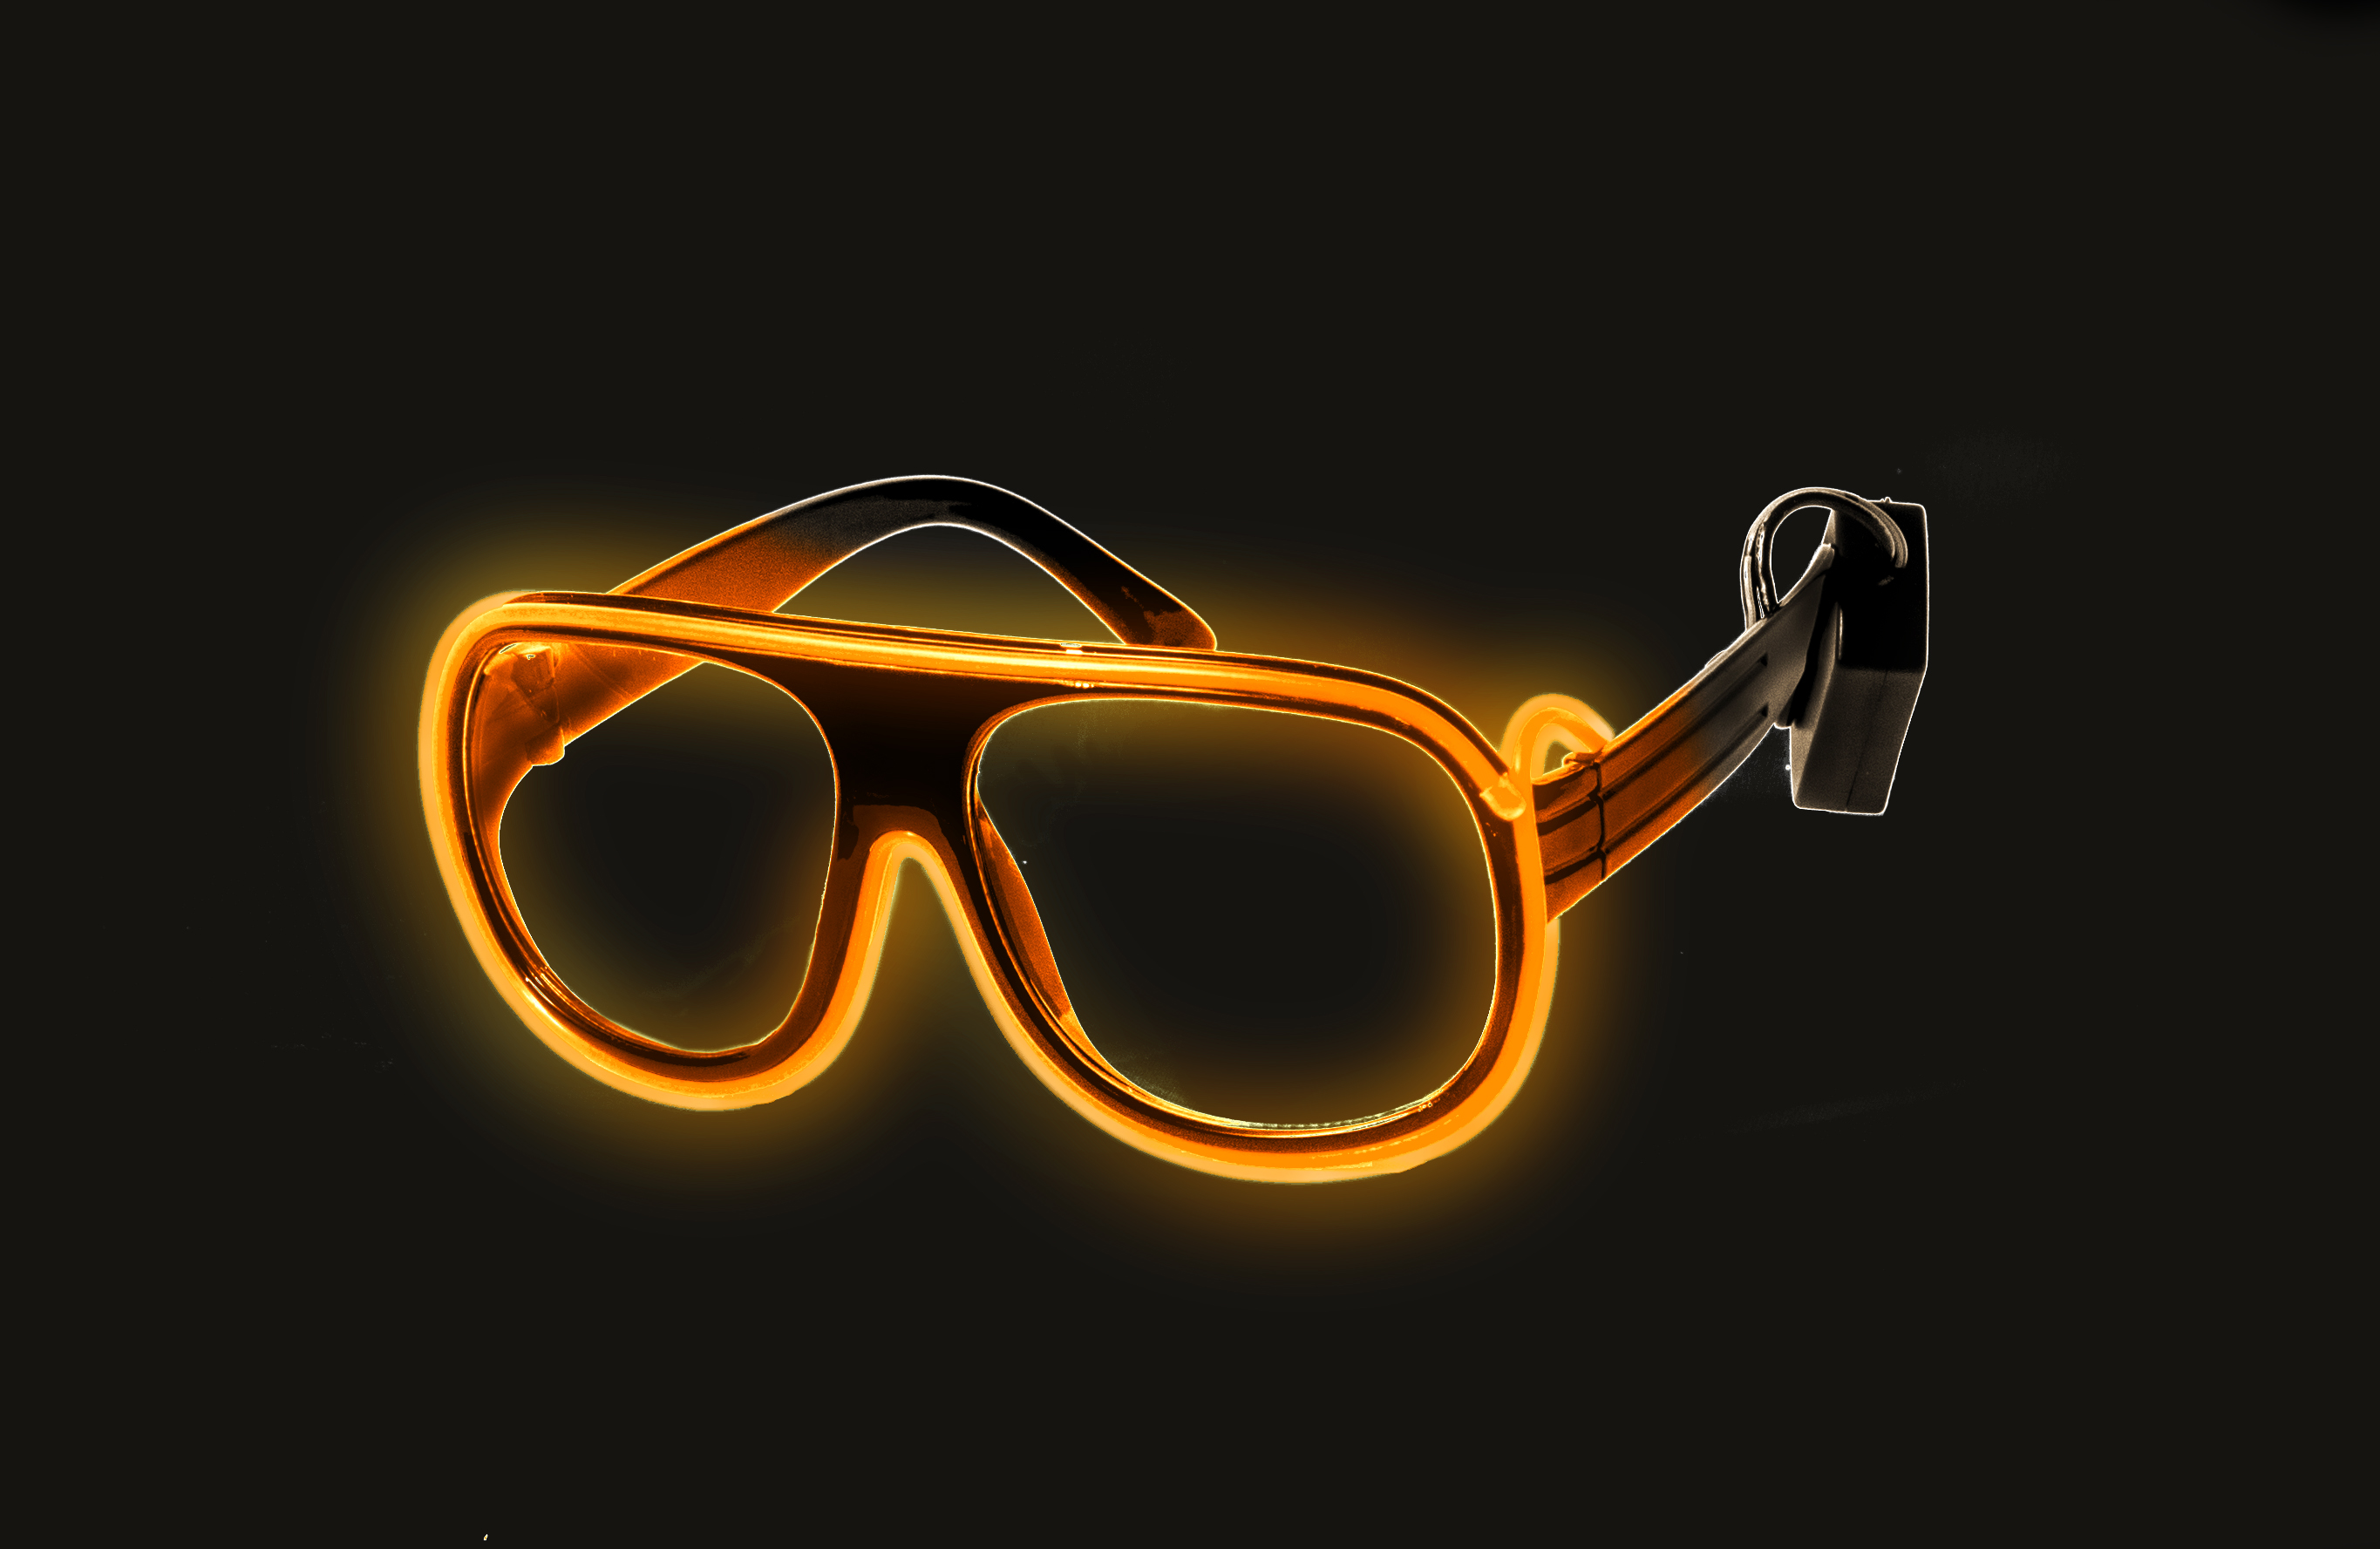 EL Aviator Glasses Black Frame - Orange